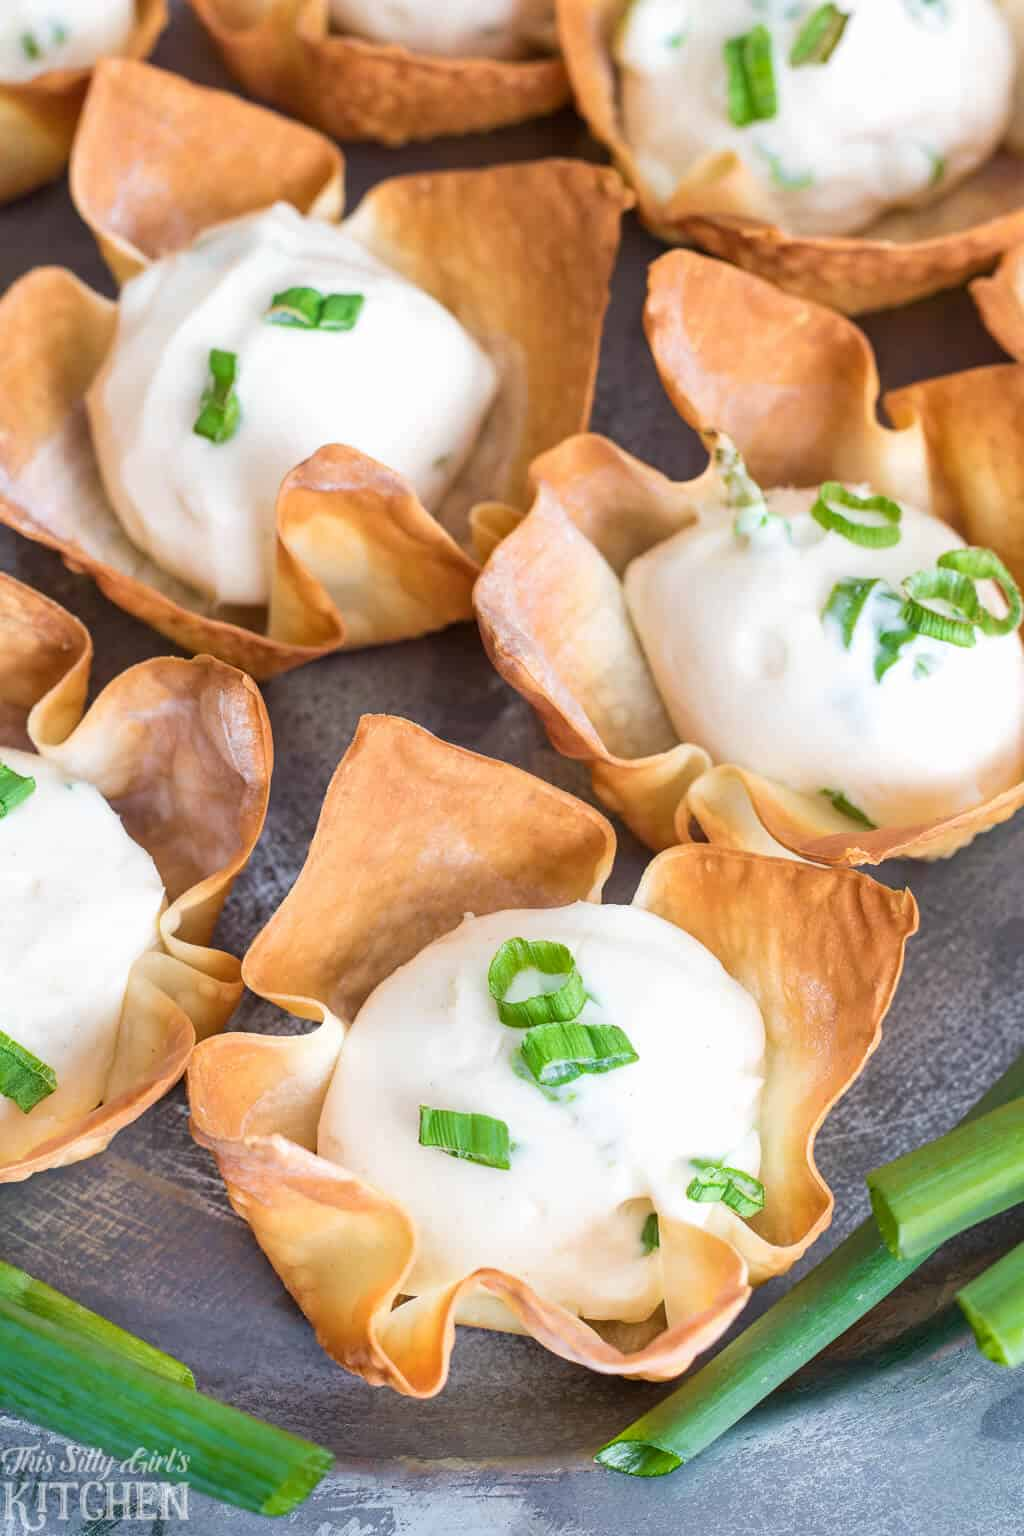 Baked Cream Cheese Wonton Cups, better than takeout and ready in under 20 minutes! #Recipe from ThisSillyGirlsKitchen.com #creamcheese #wontons #wontoncups #appetizer